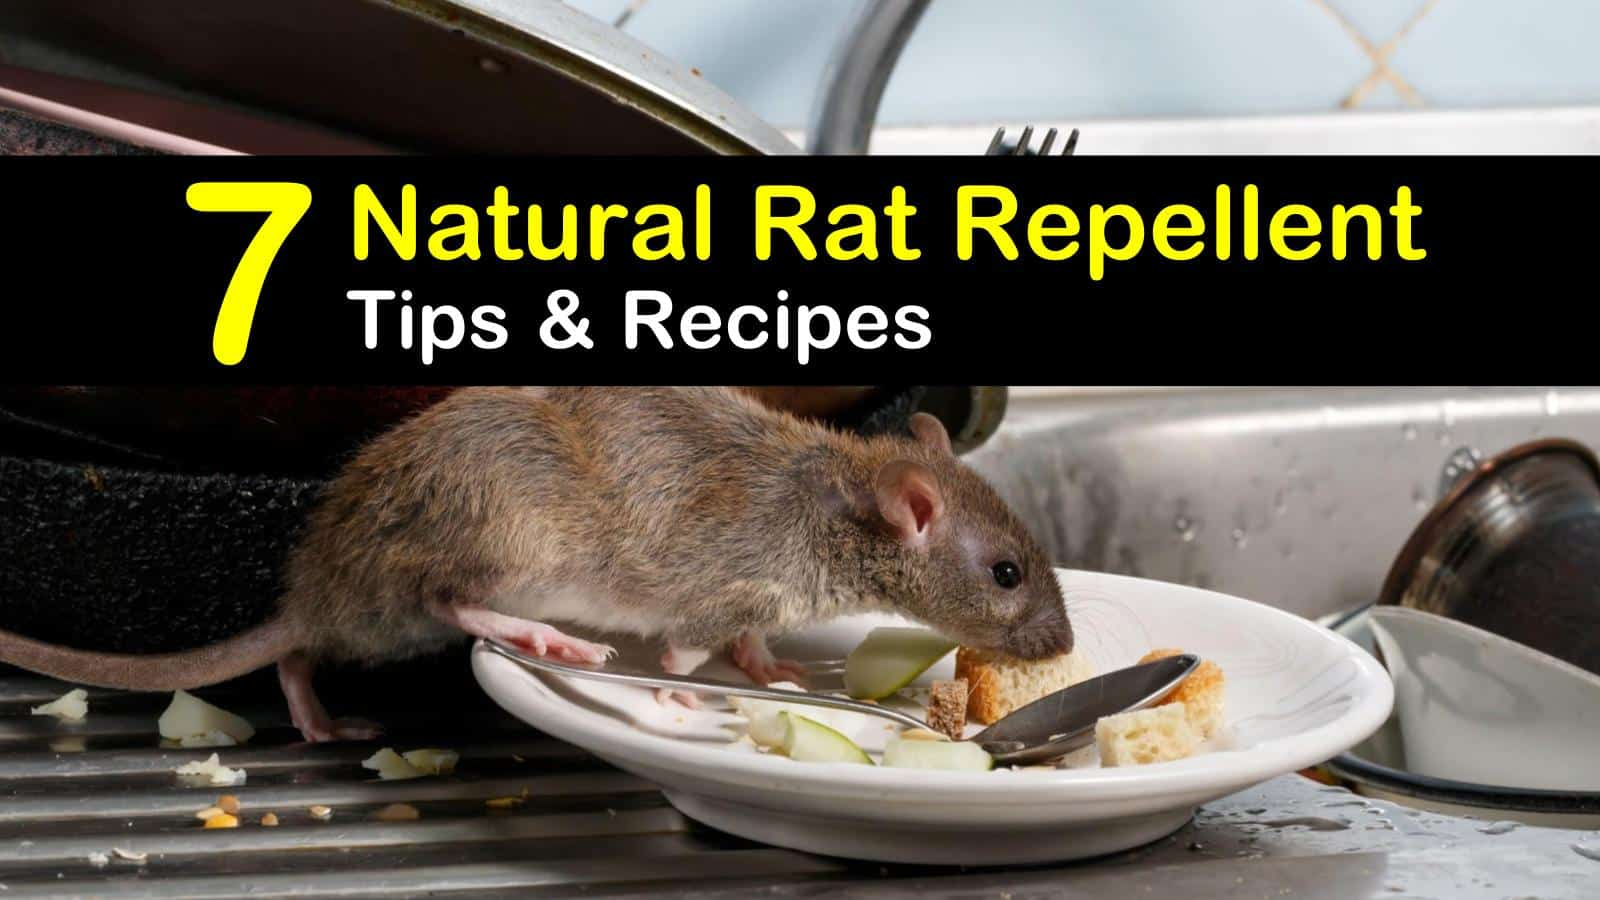 Natural Rat Repellent